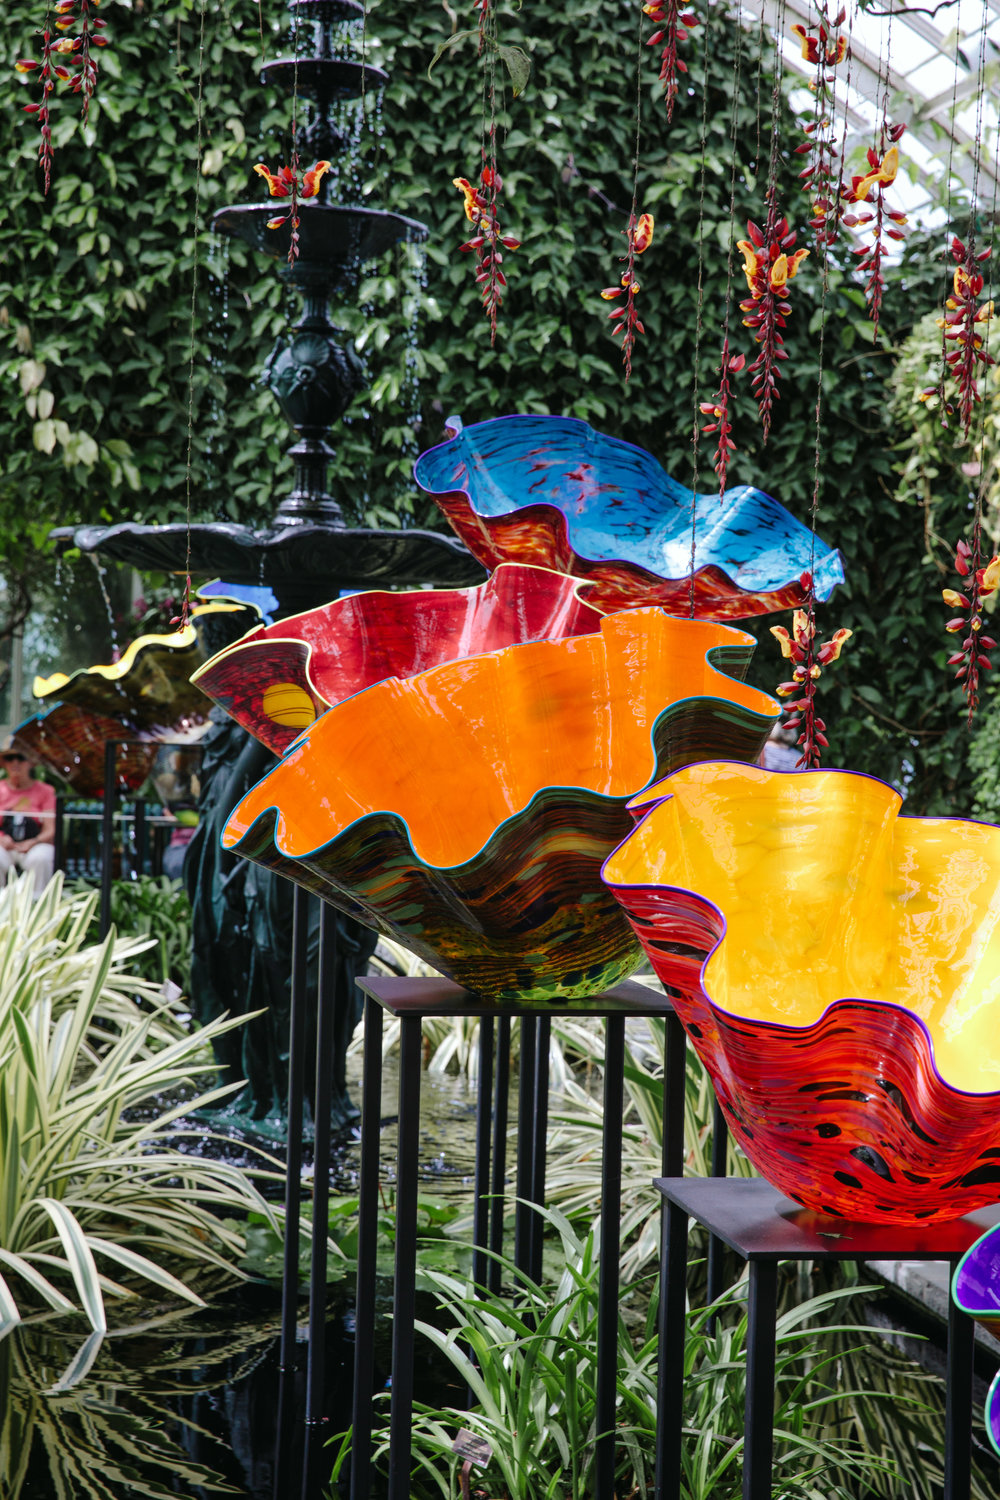 CHIHULY NY BOTANICAL GARDEN_BRIAN SAMUELS_AUGUST 2017-7171.jpg